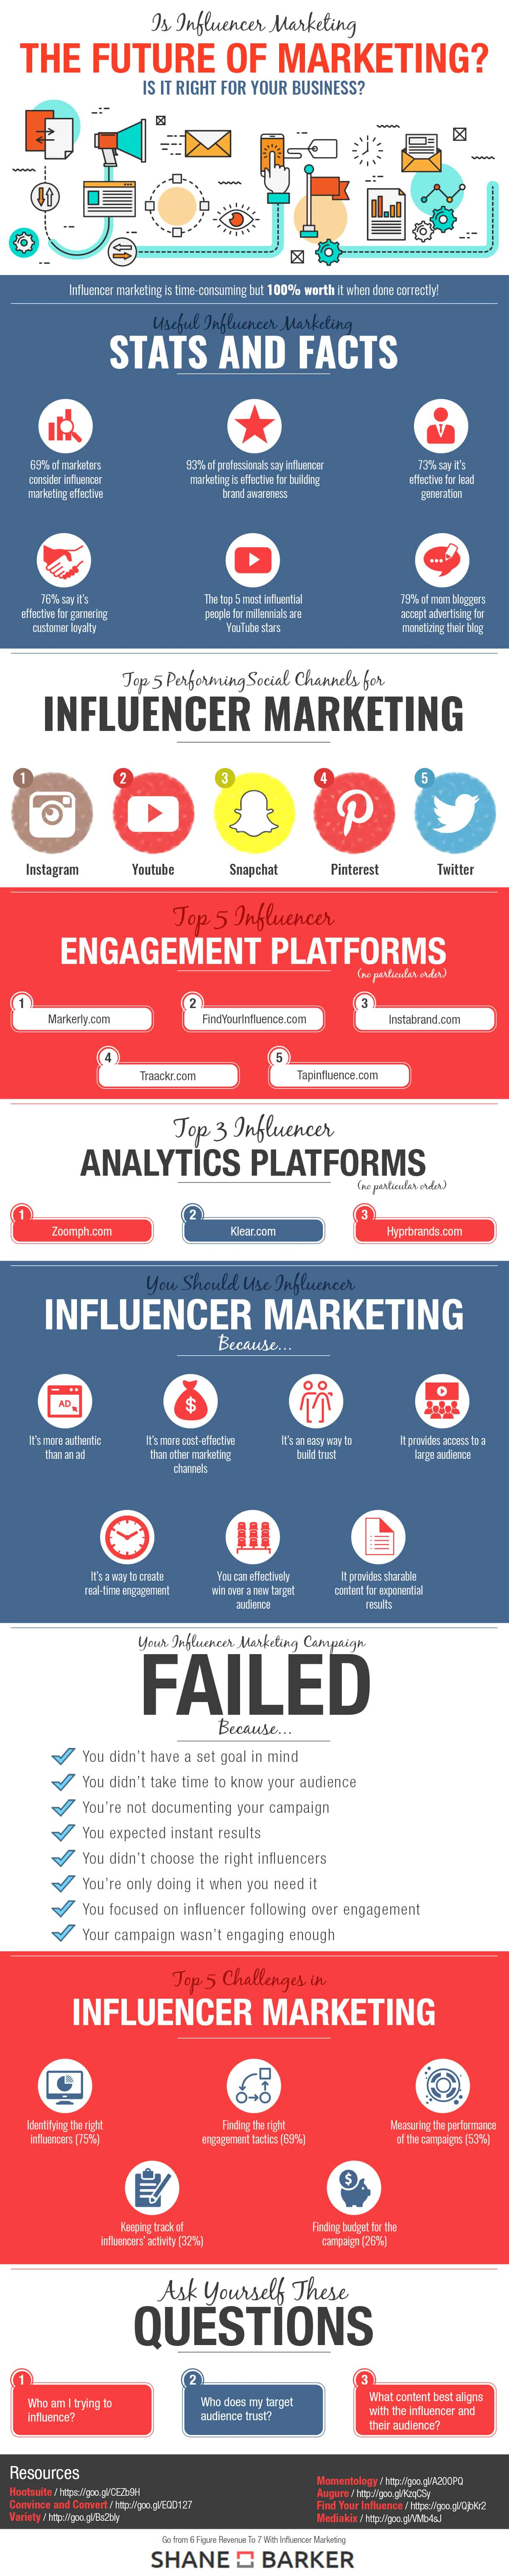 Is-Influencer-Marketing-the-Future-of-Marketing-IG